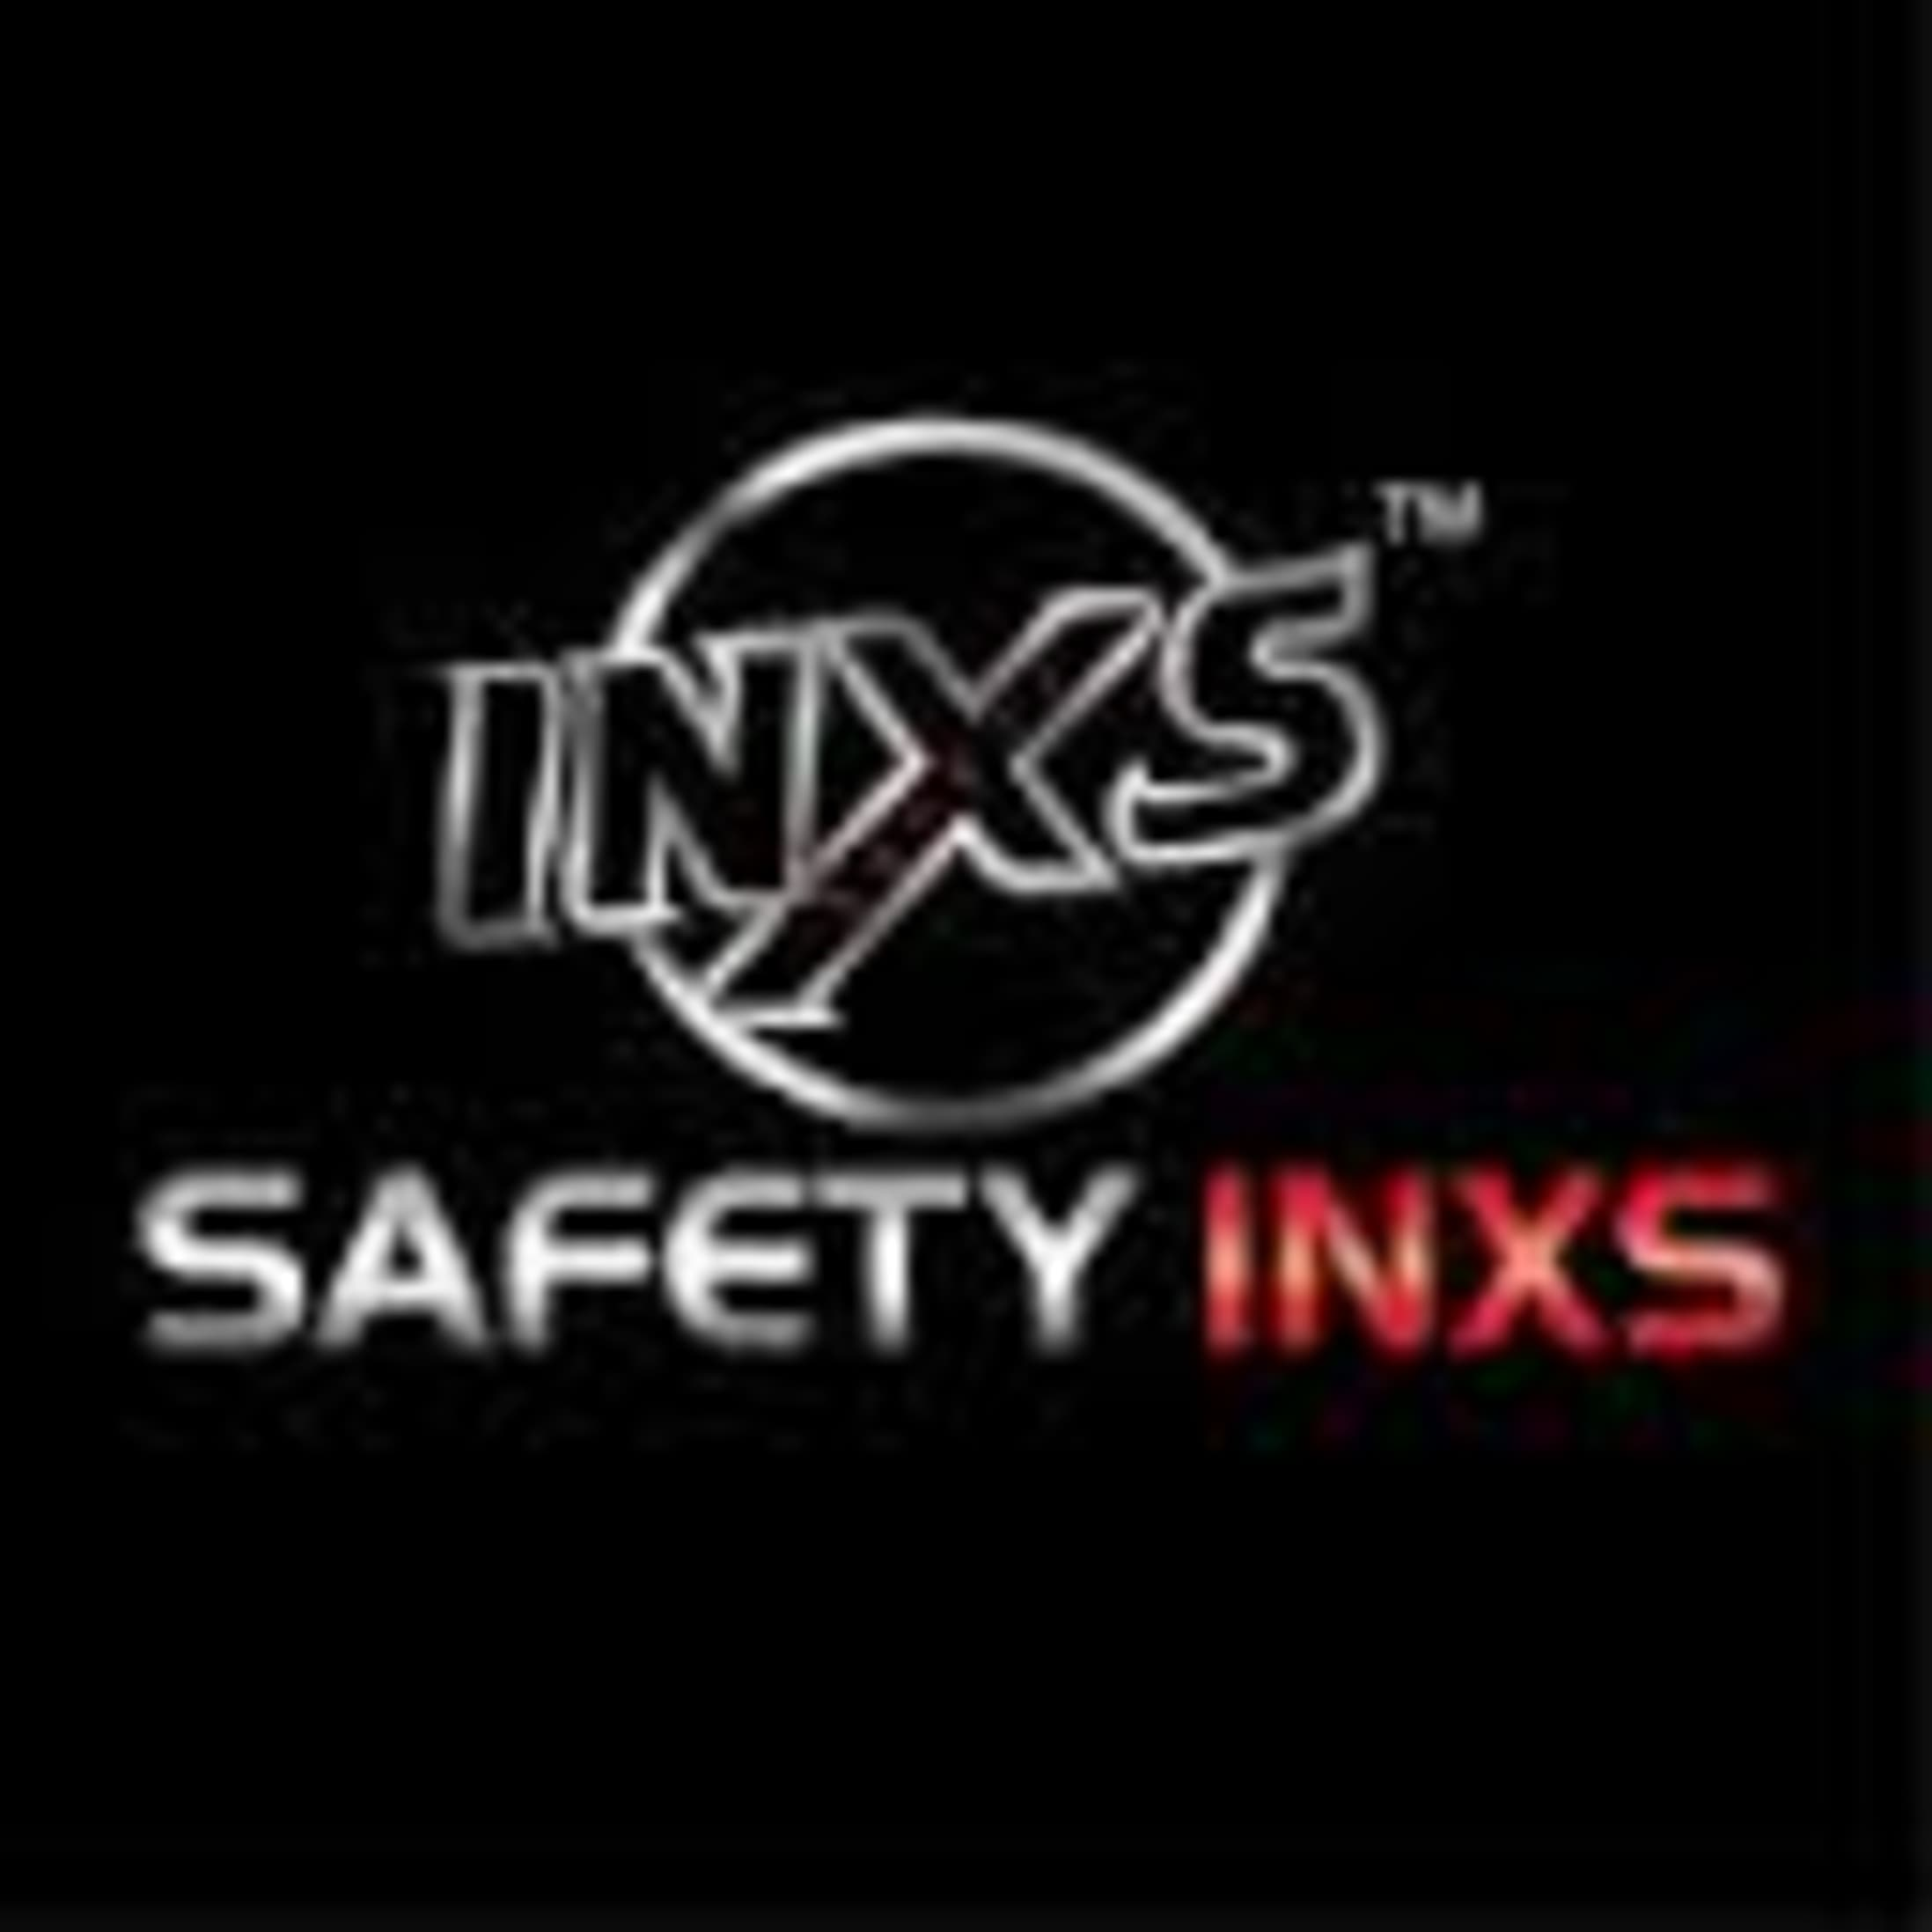 Safety INXS Logo